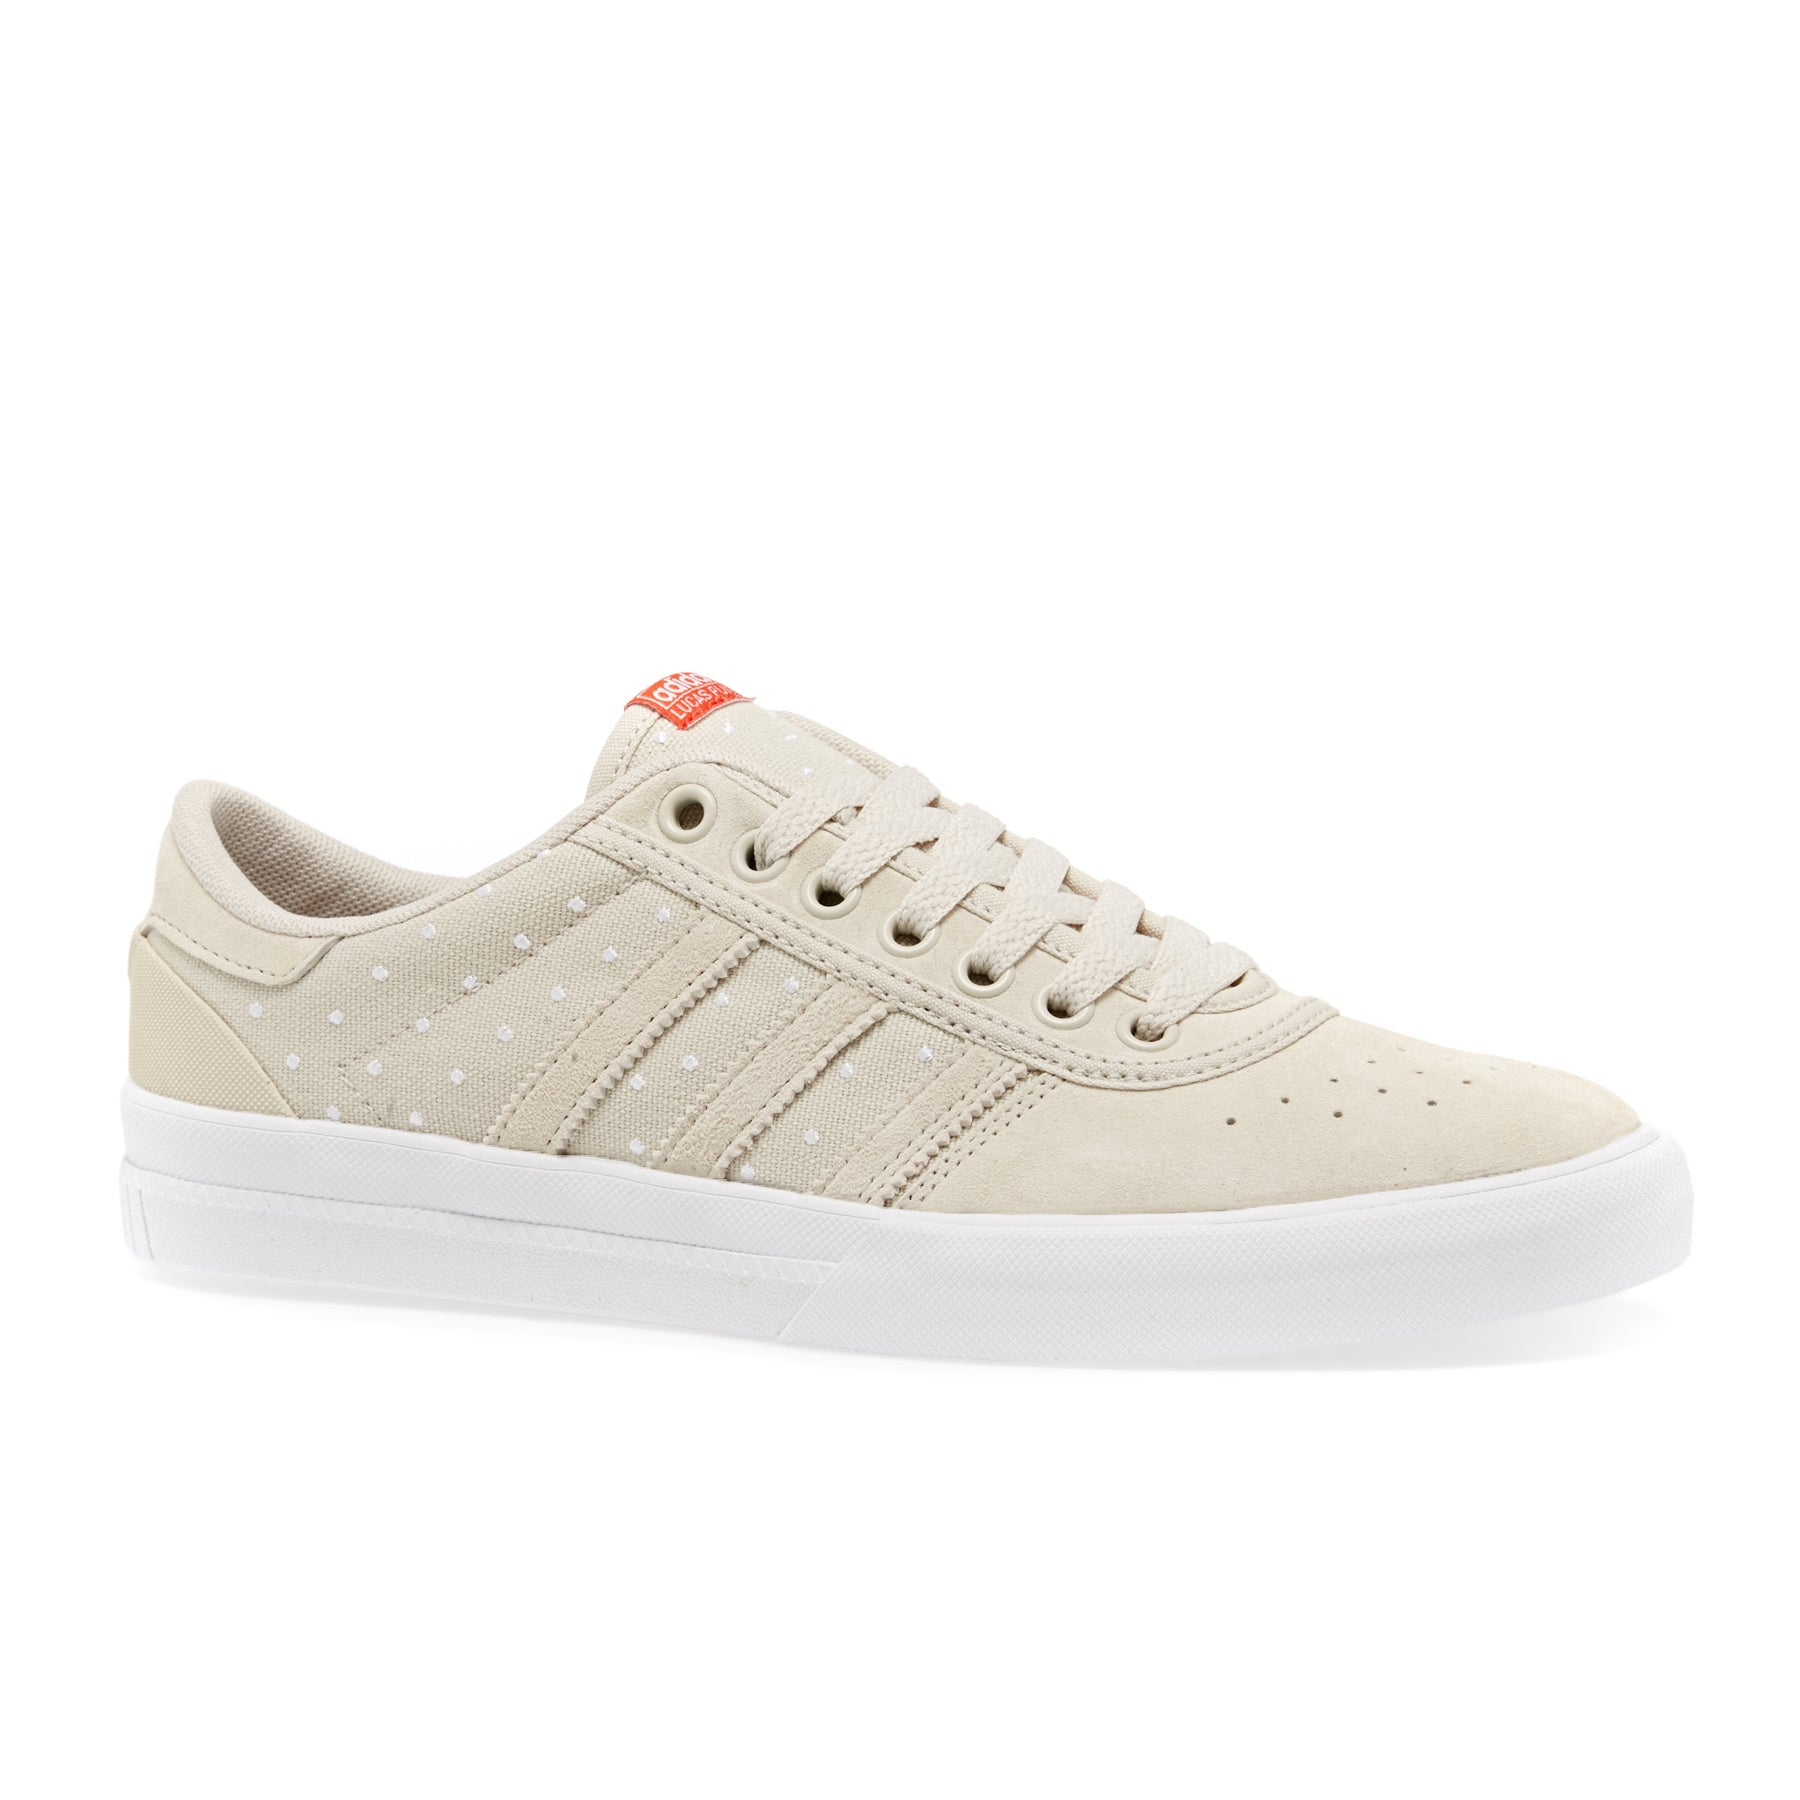 Sapatos Adidas Lucas Premiere - Clear Brown/ftwr White/active Red